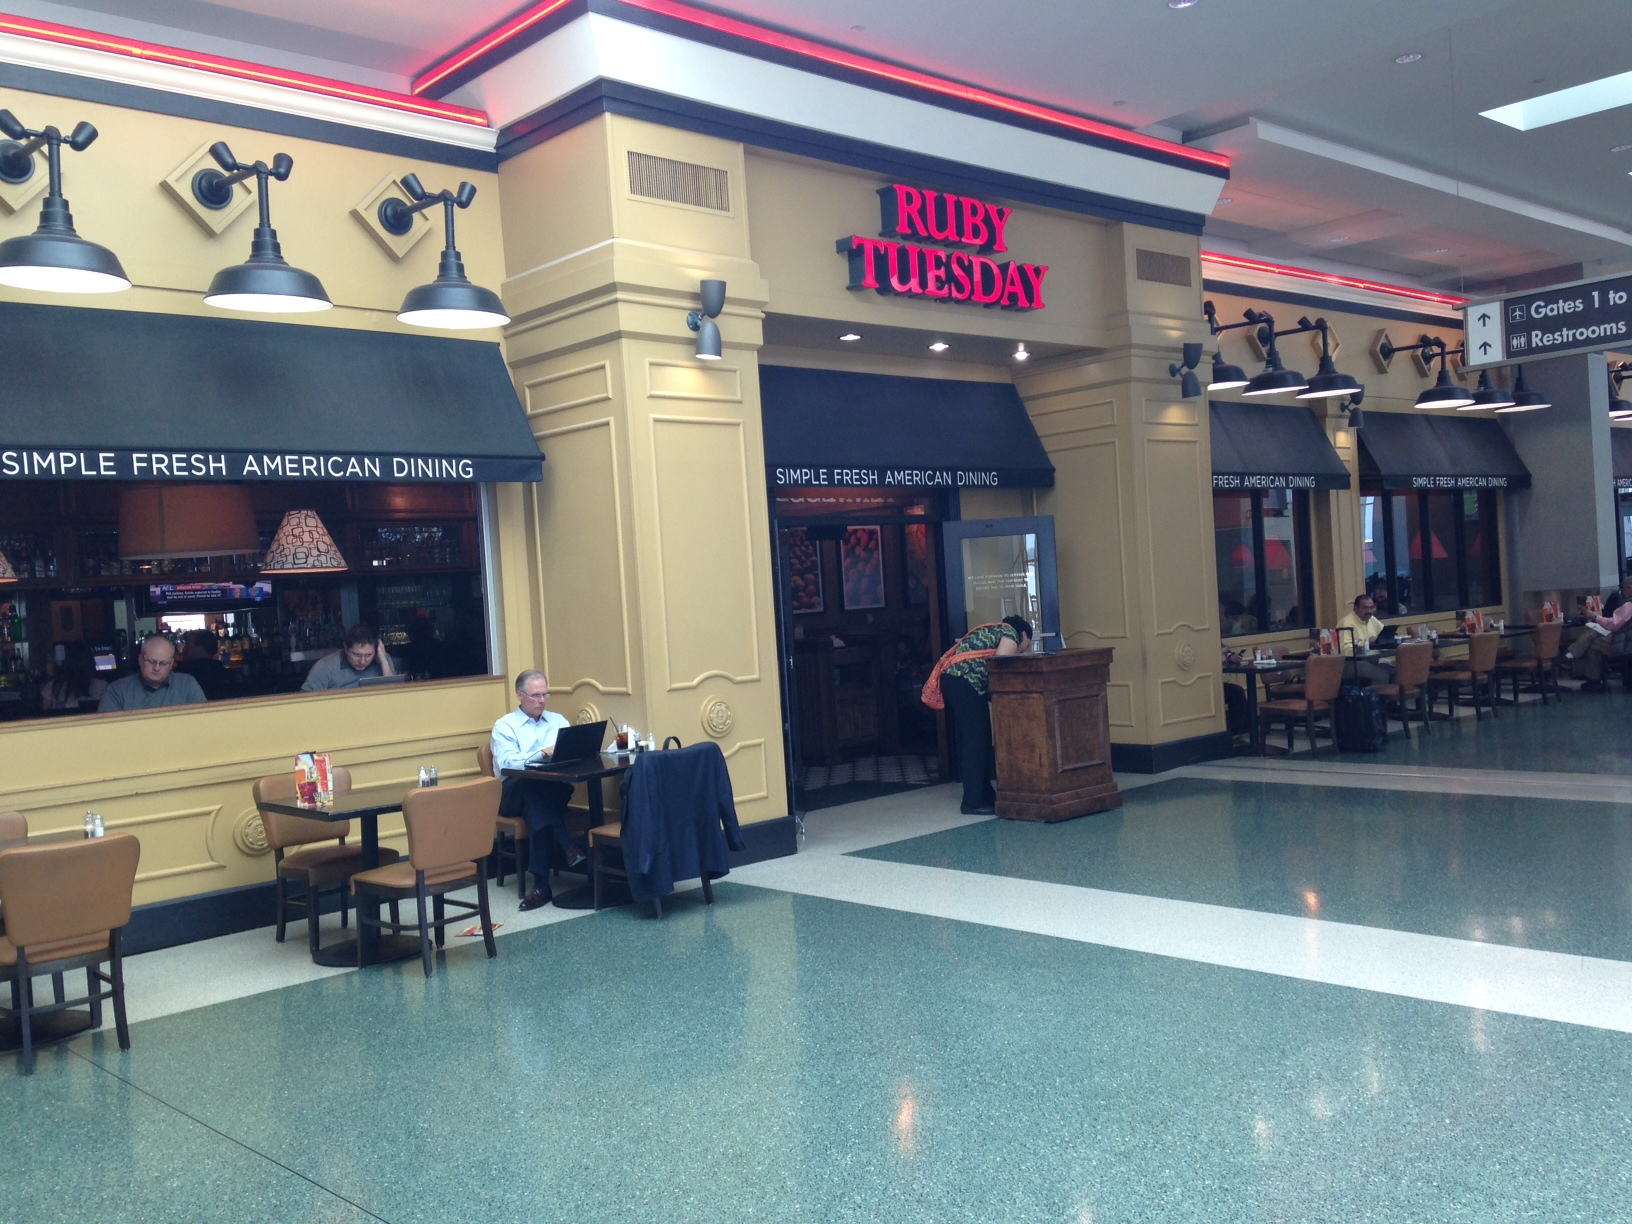 We had a snack at the Ruby Tuesday restaurant in the McGhee Tyson Airport in Knoxville.  Very convenient.